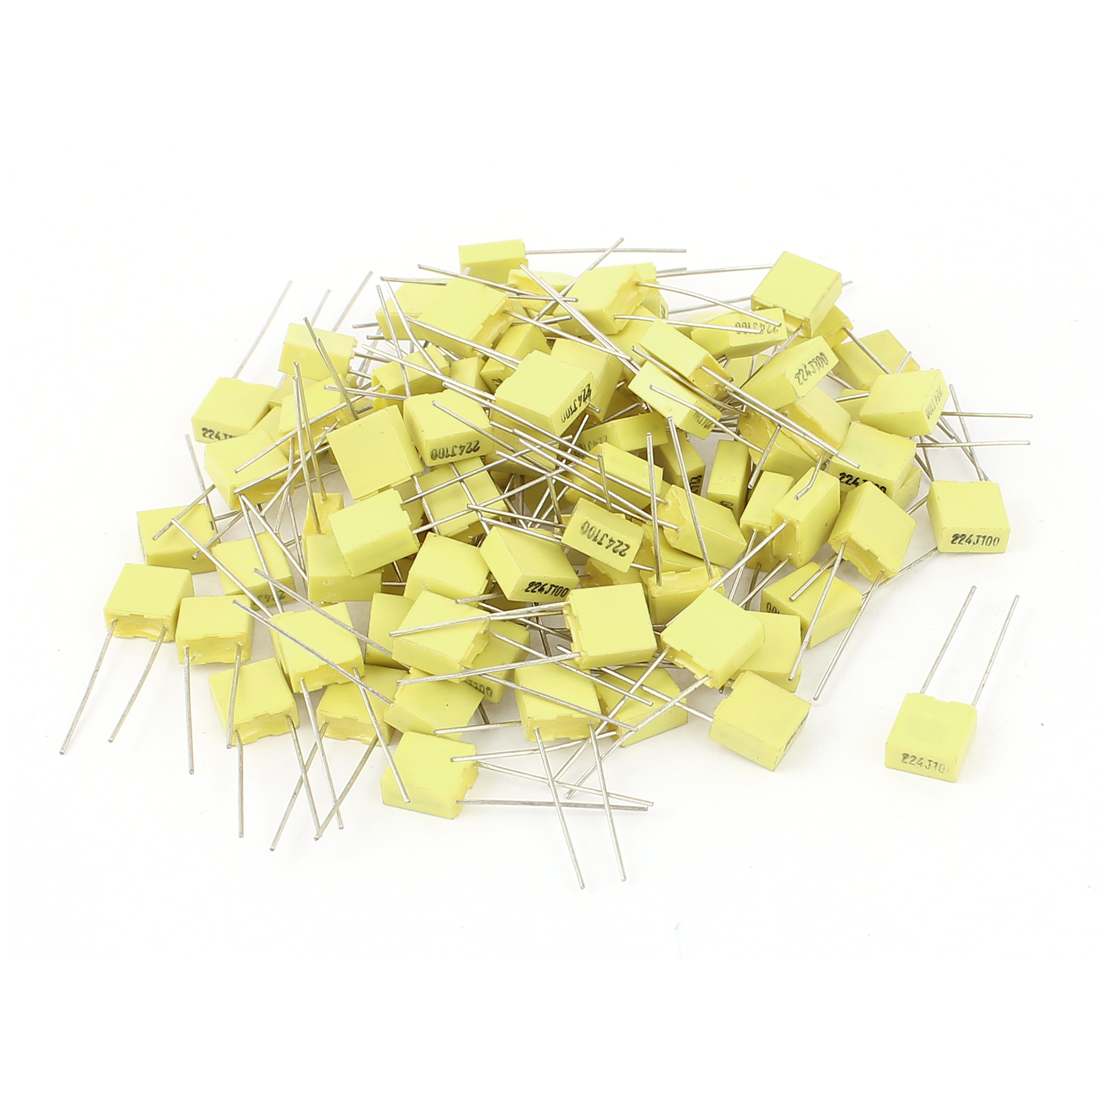 50 Pcs 100V 0.22uF 220NF Radial Lead Box Type Film Correction Capacitors